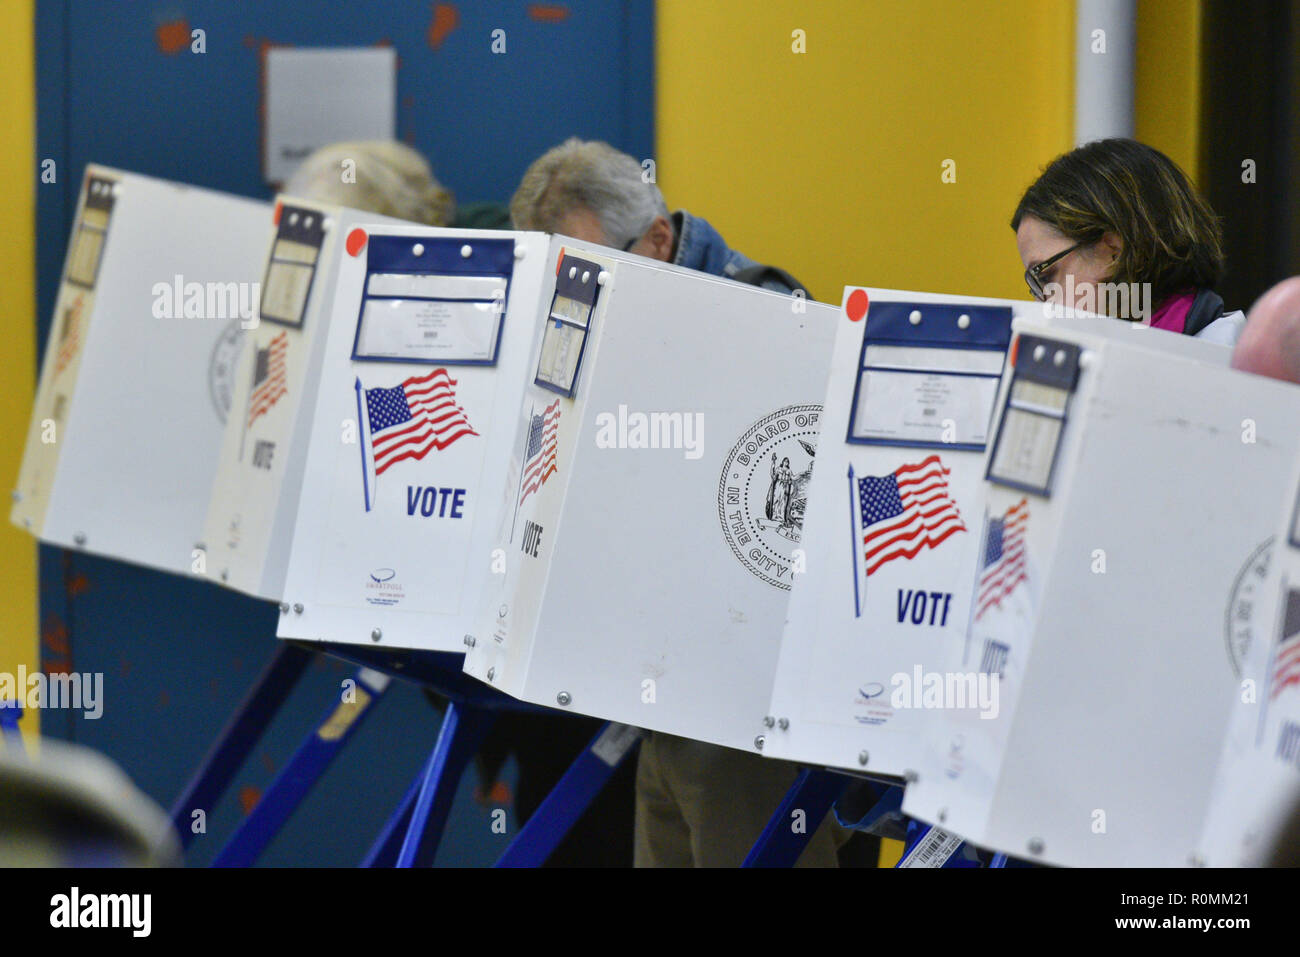 New York, USA. 6th November, 2018. Residents in the Park Slope section of Brooklyn, New York cast their vote during the Midterm Elections on November 6, 2018. Credit: Erik Pendzich/Alamy Live News - Stock Image